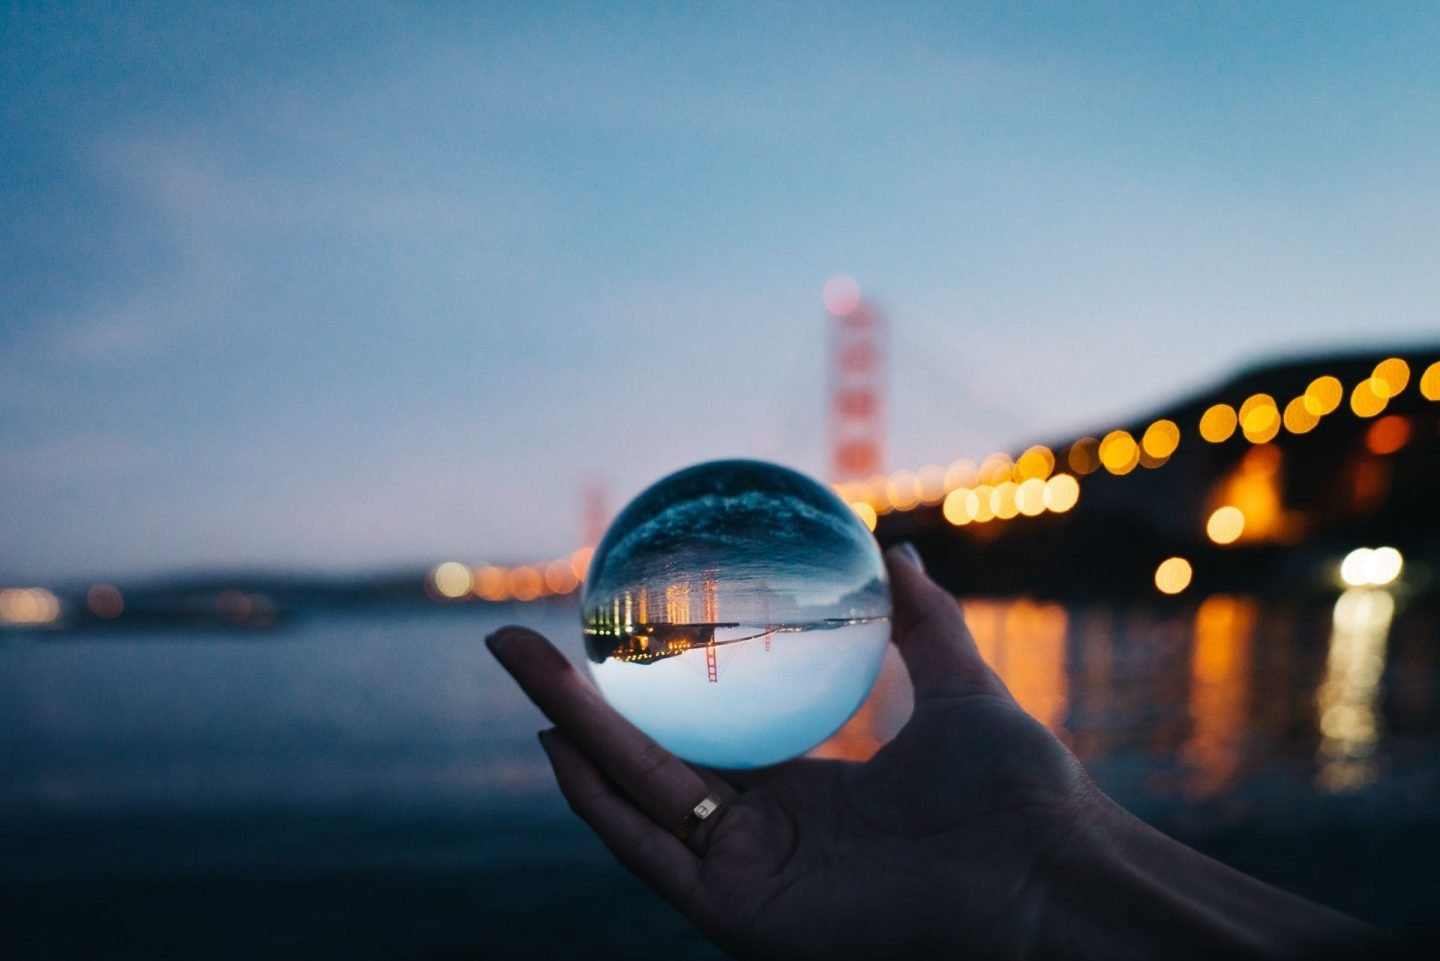 Crystal Ball, bridge reflections